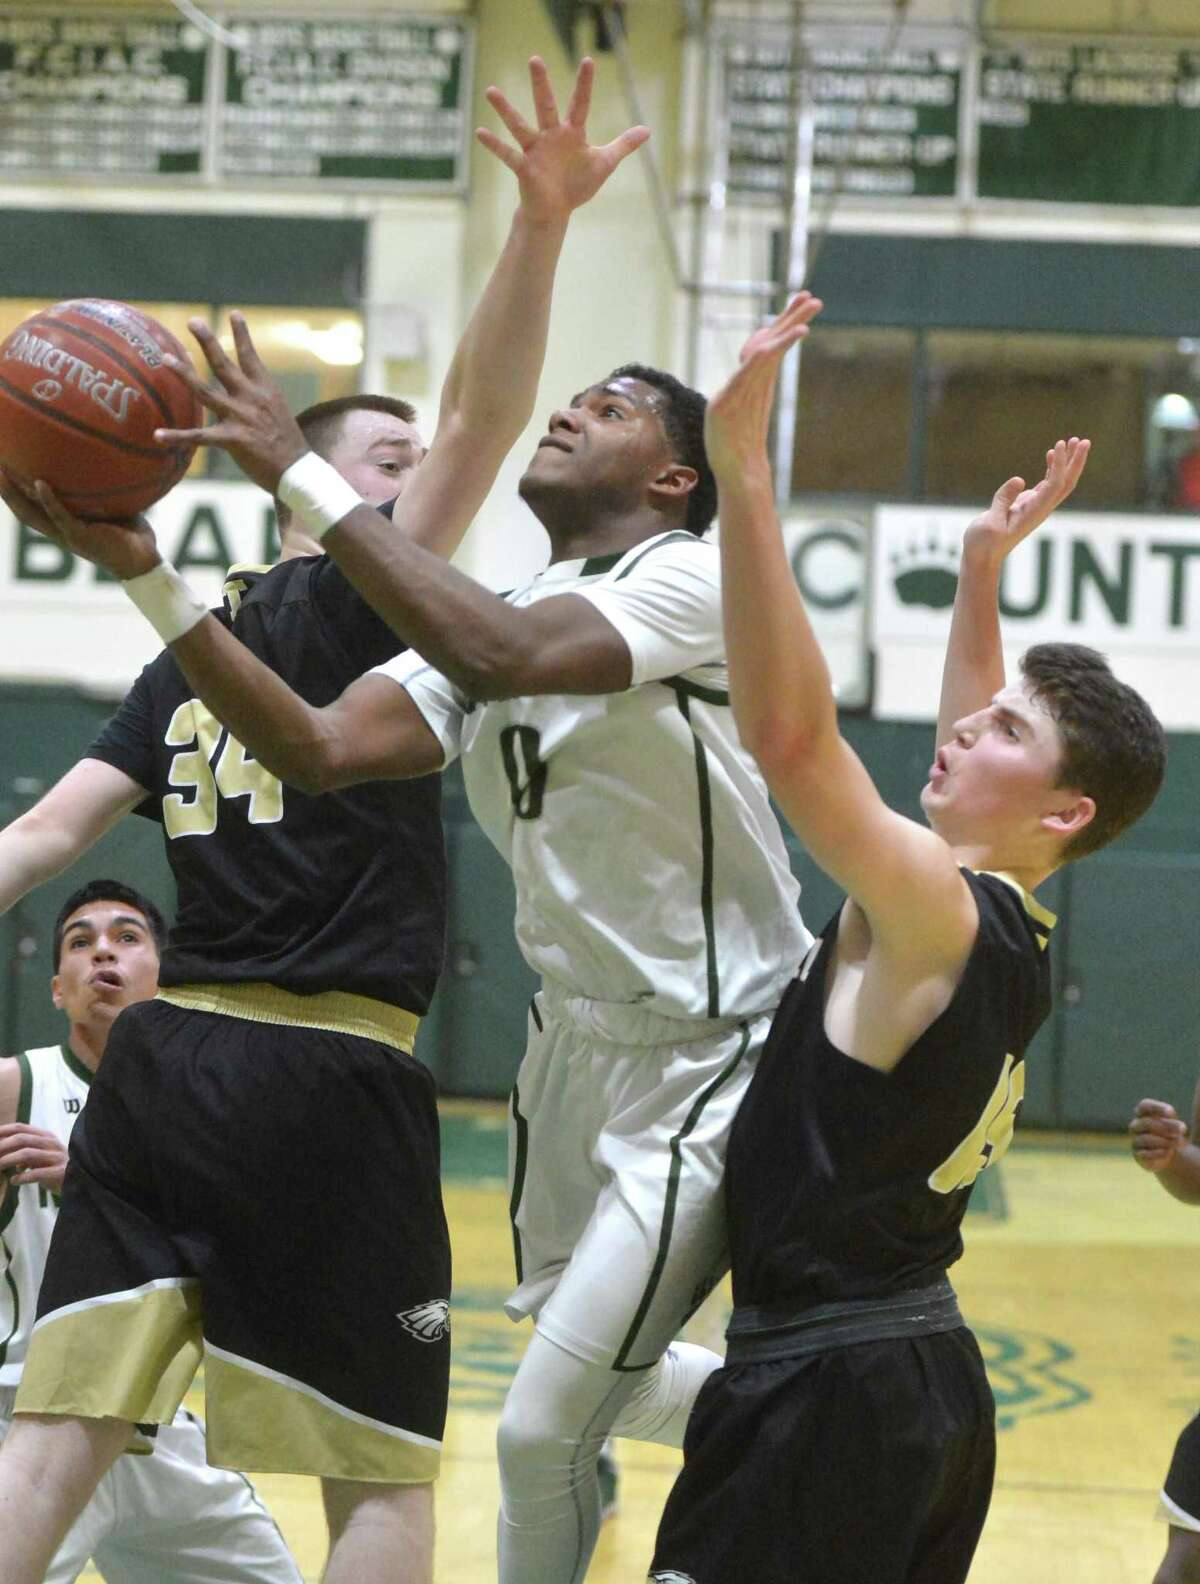 Norwalk High's # 0 Tyrique Langley shoots and scores vs. Trumbull High School in boys basketball action on Monday February 12, 2018 in Norwalk Conn.